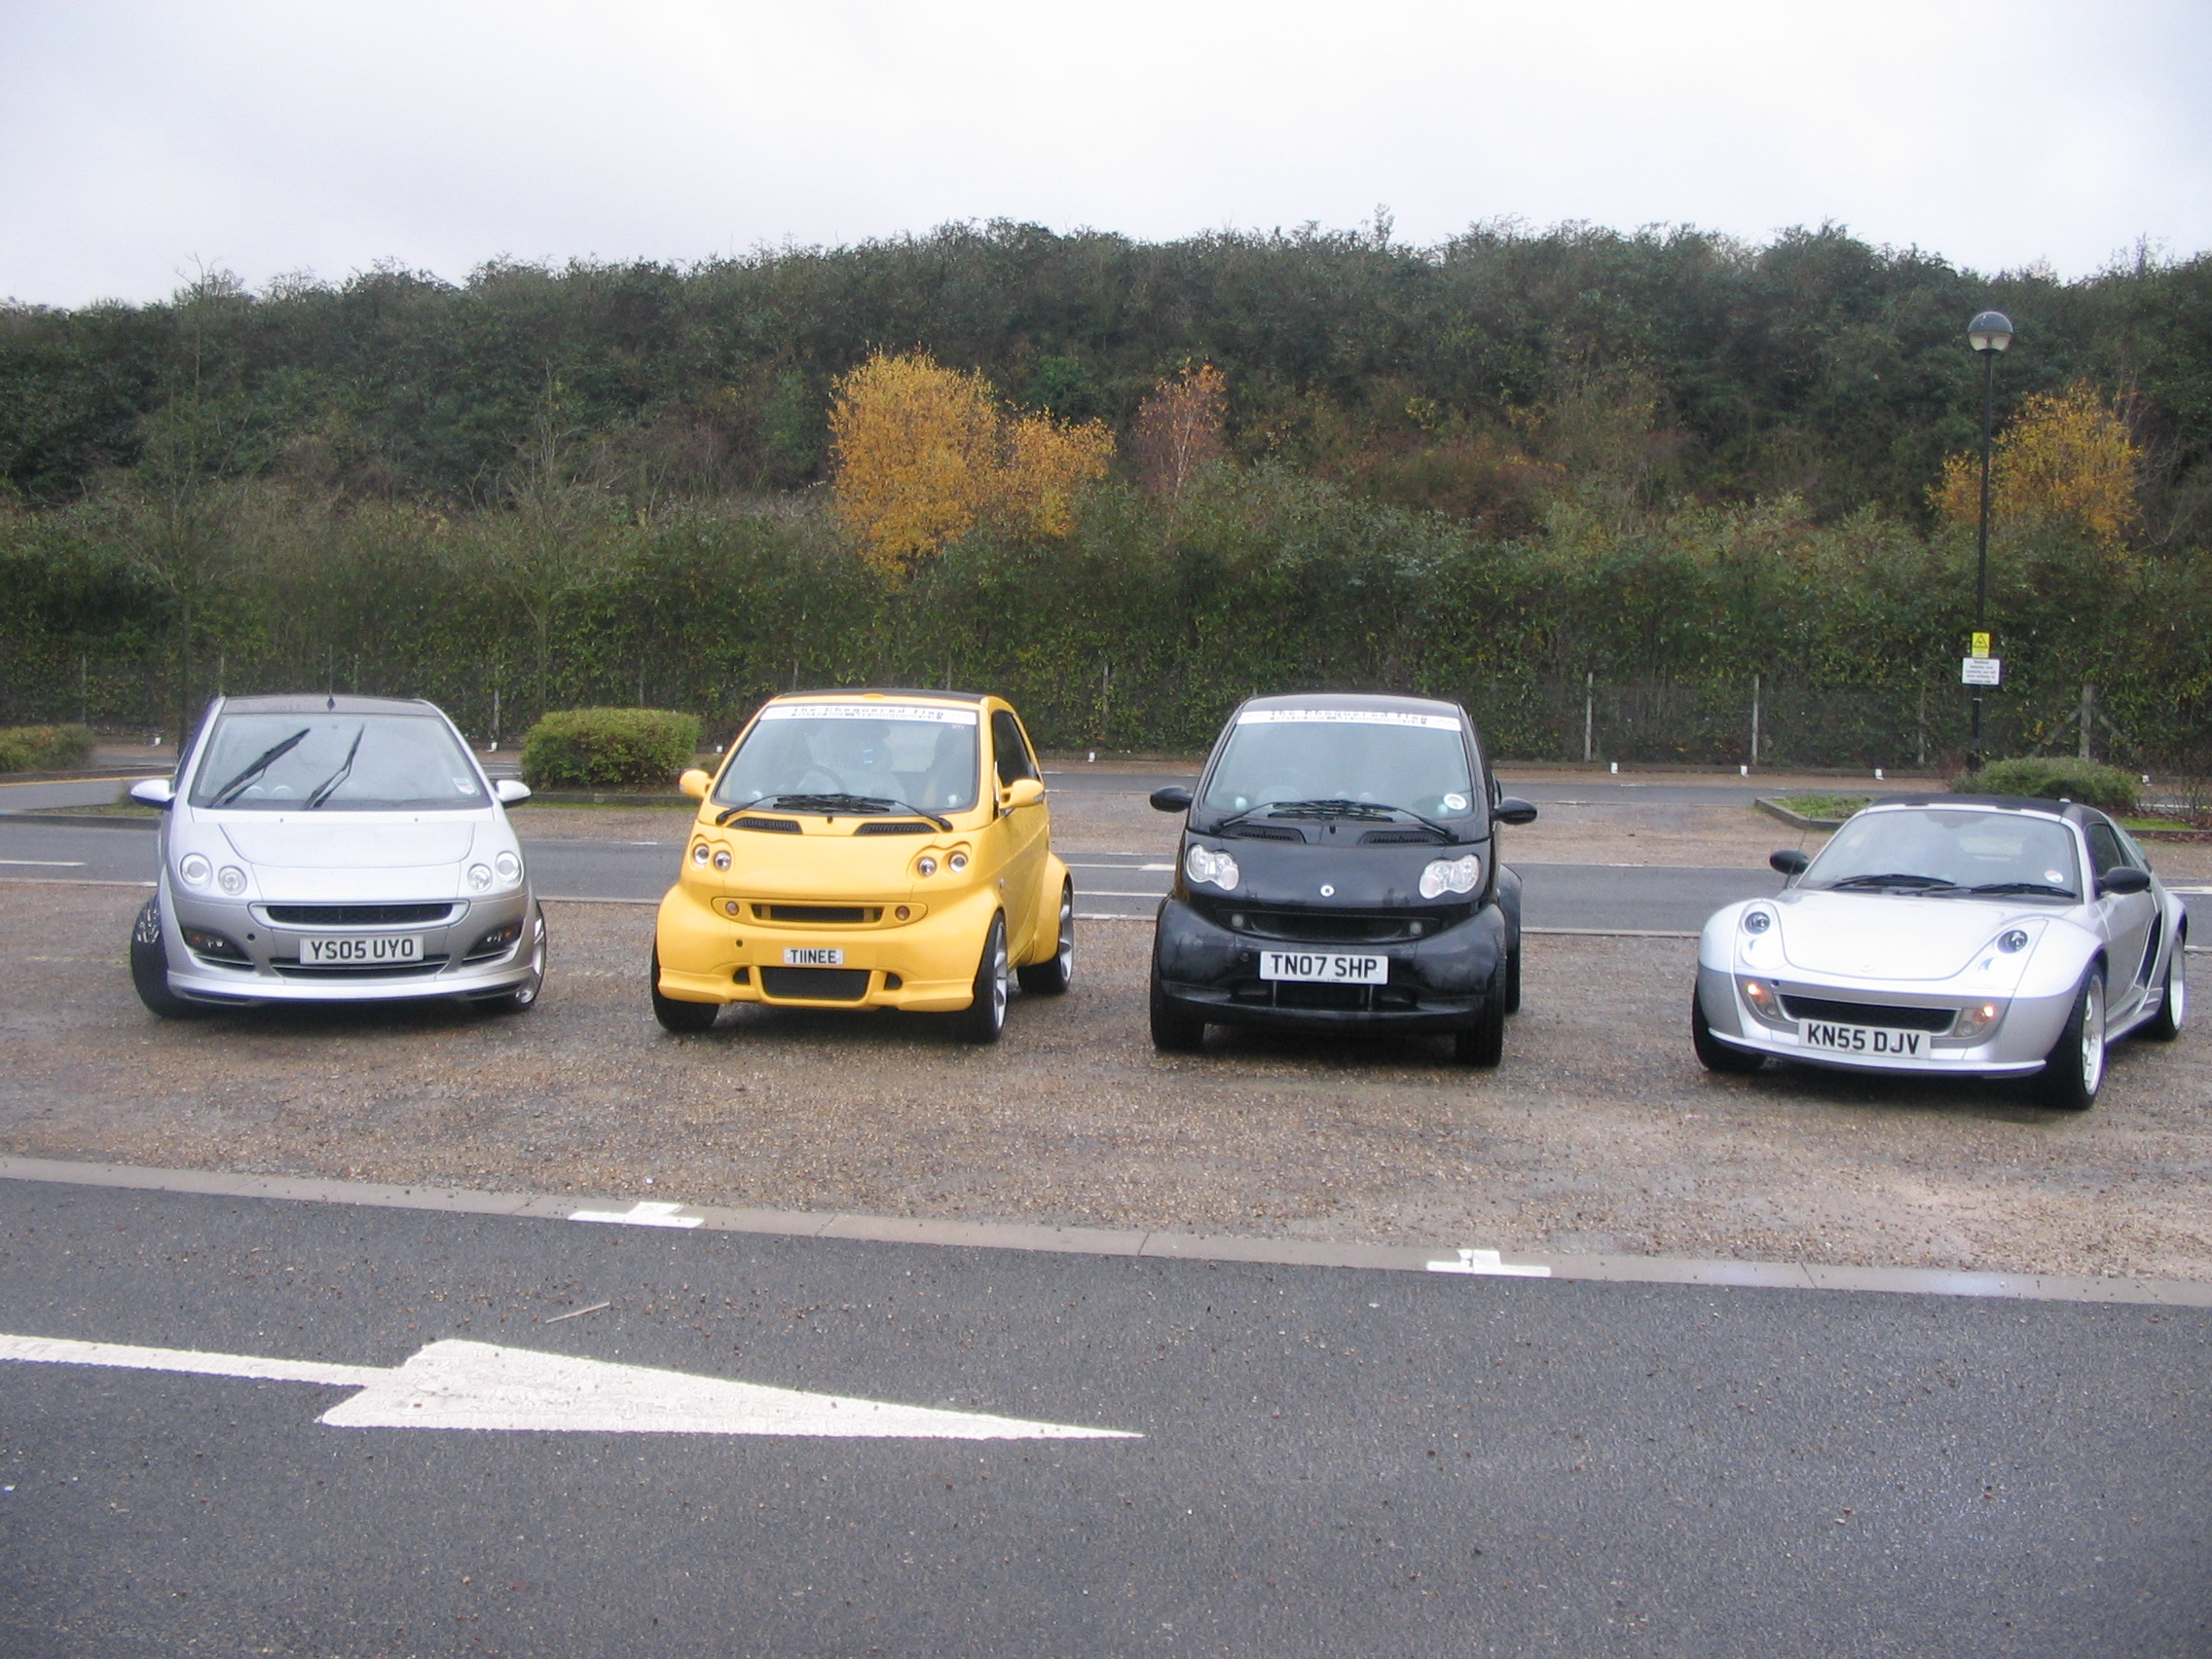 the chequered flag smart car engines servicing, smart car recovery smart cars us chequered flag uk, about us smart car dealership for smart car engines, servicing and repairs \